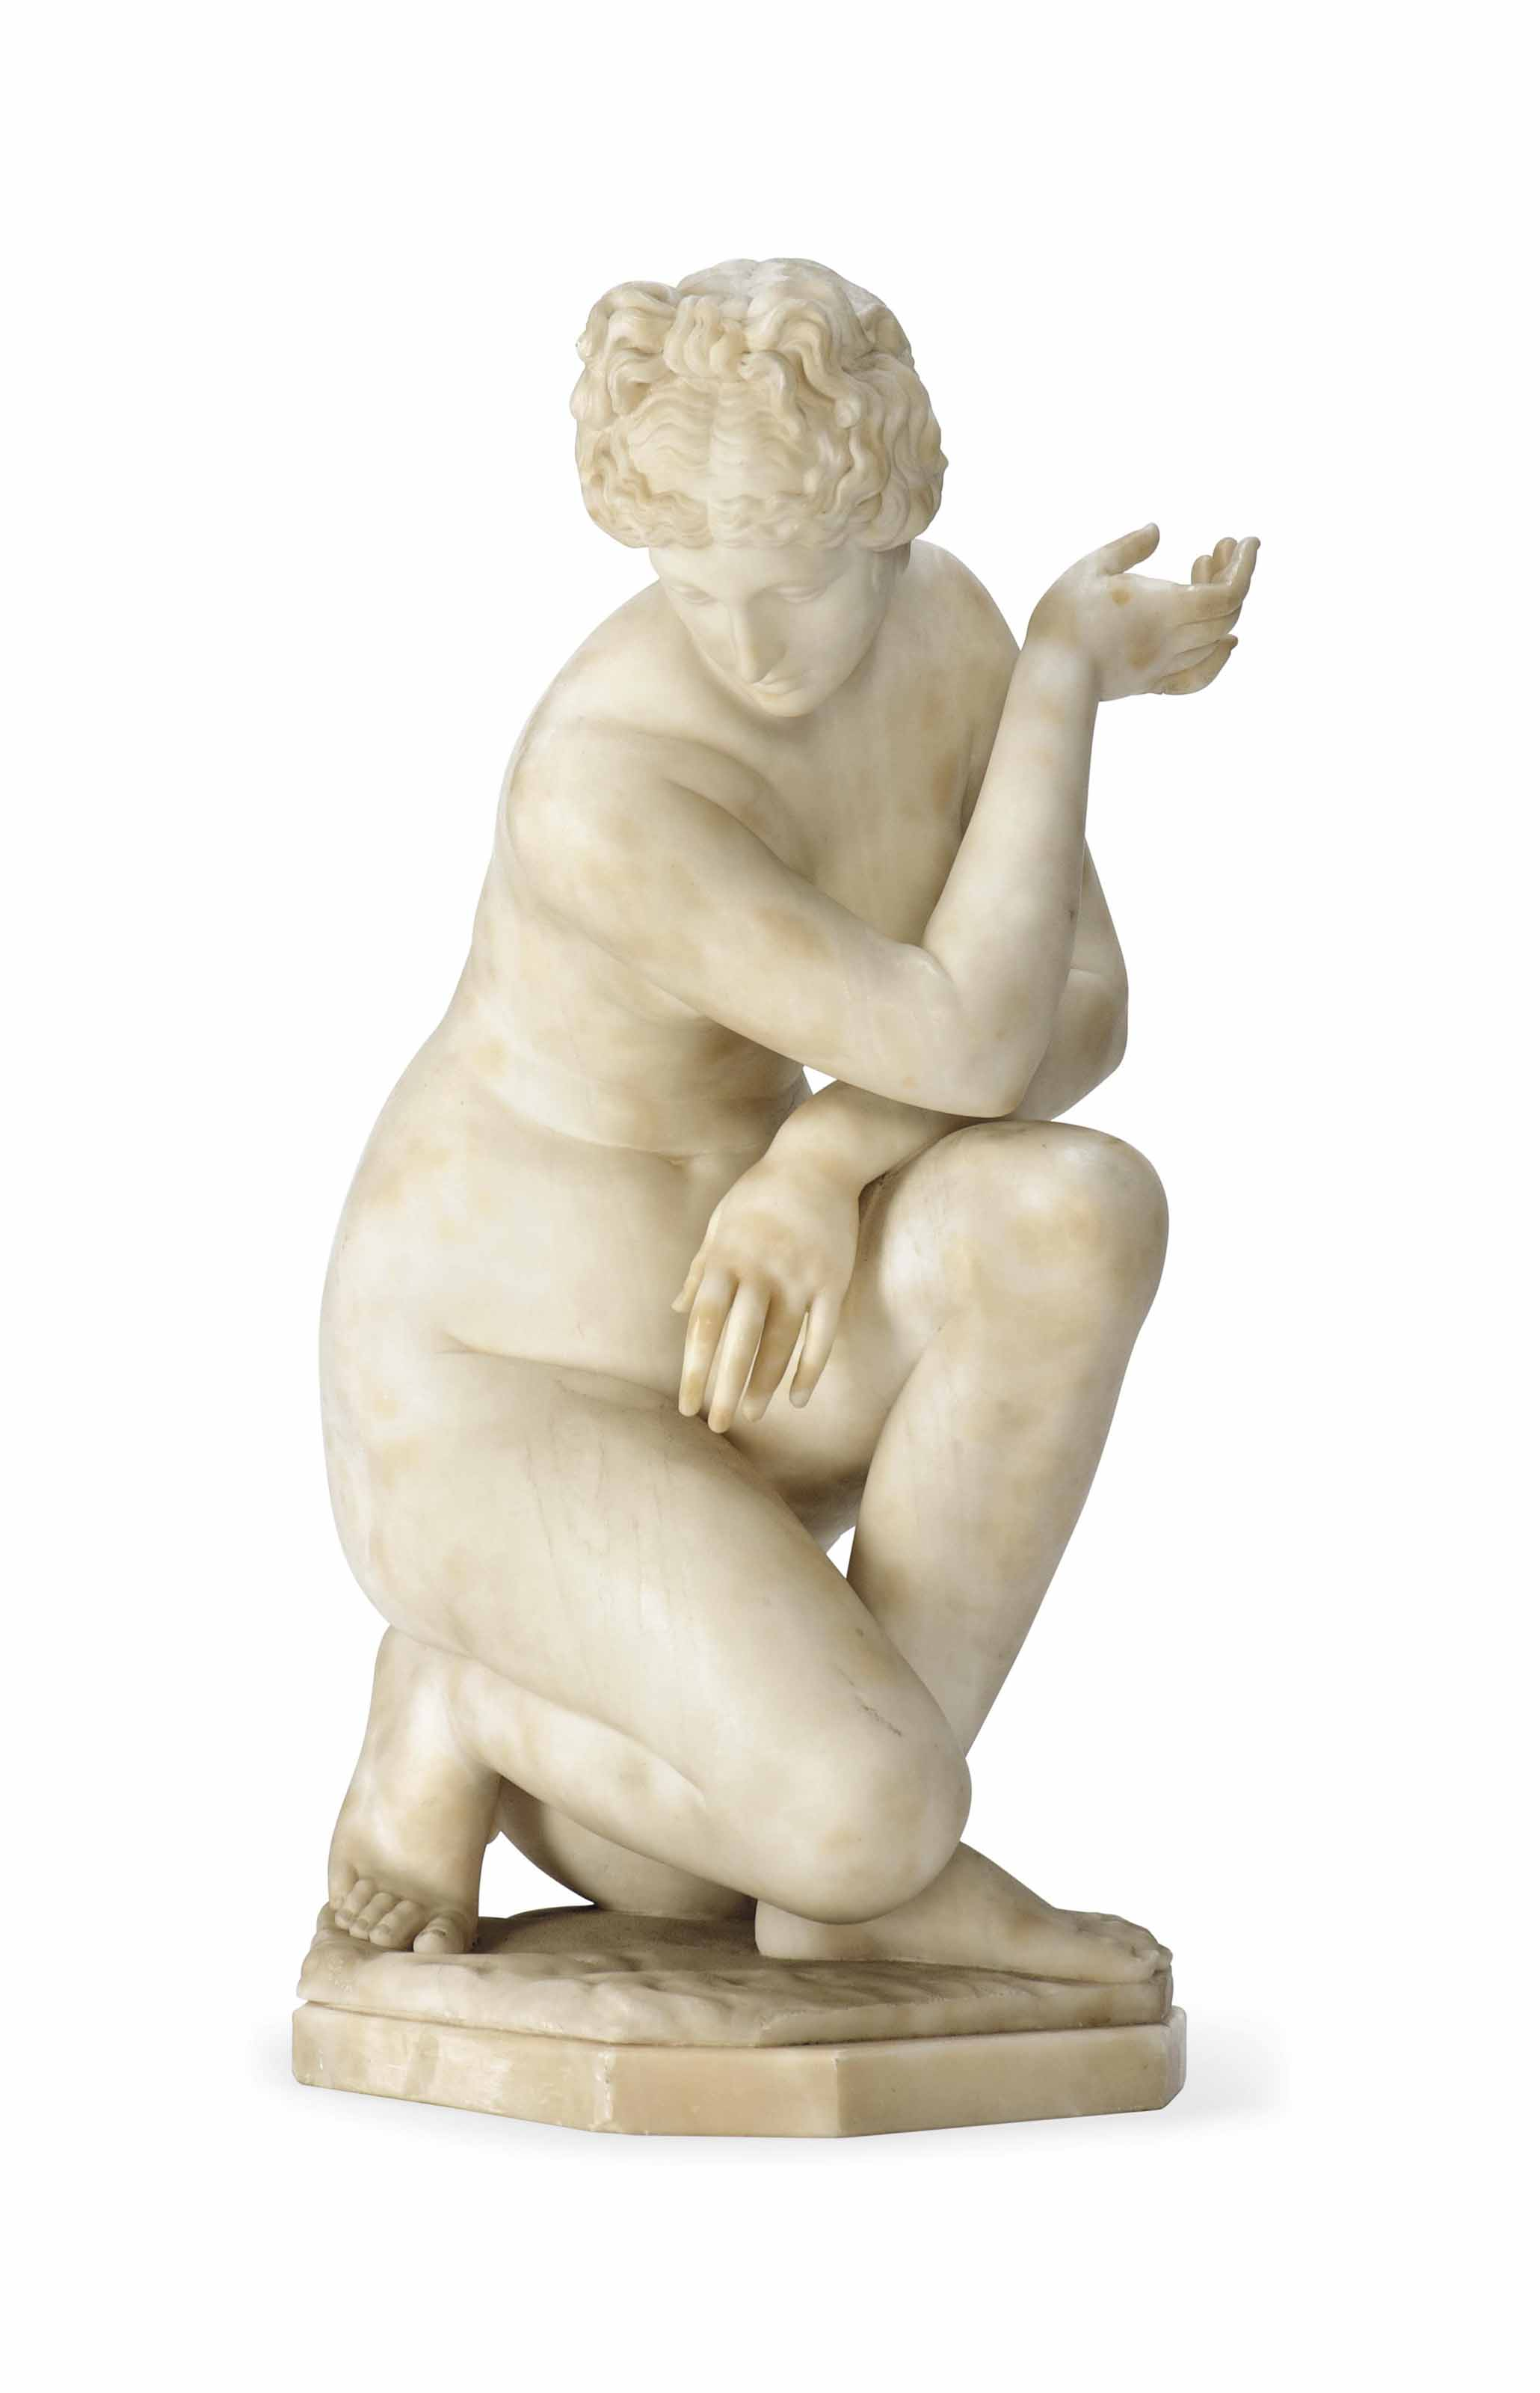 AN ITALIAN CARVED ALABASTER FIGURE OF THE CROUCHING VENUS